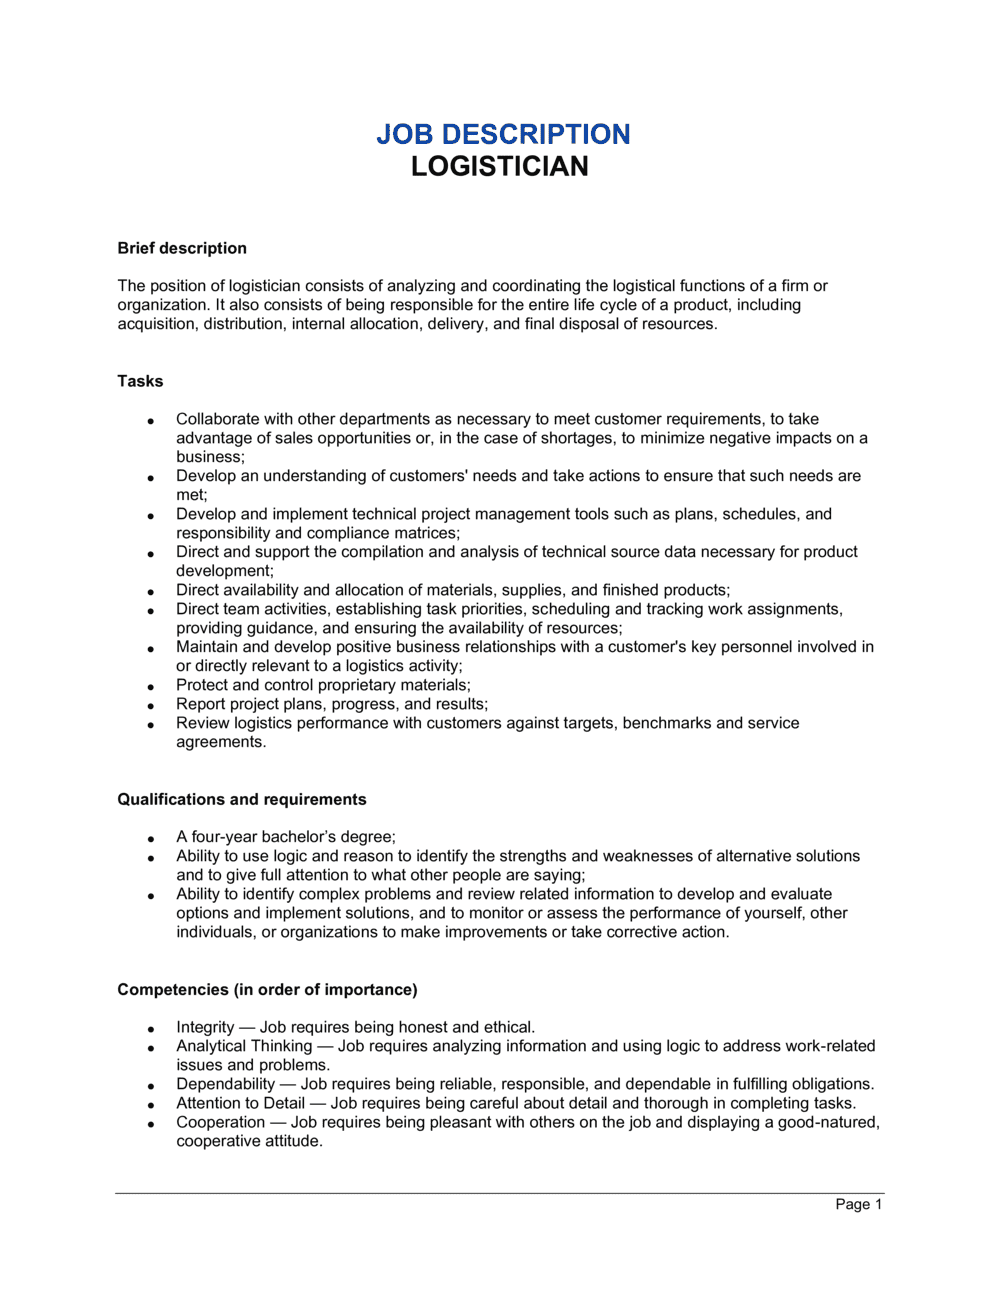 Business-in-a-Box's Logistician Job Description Template